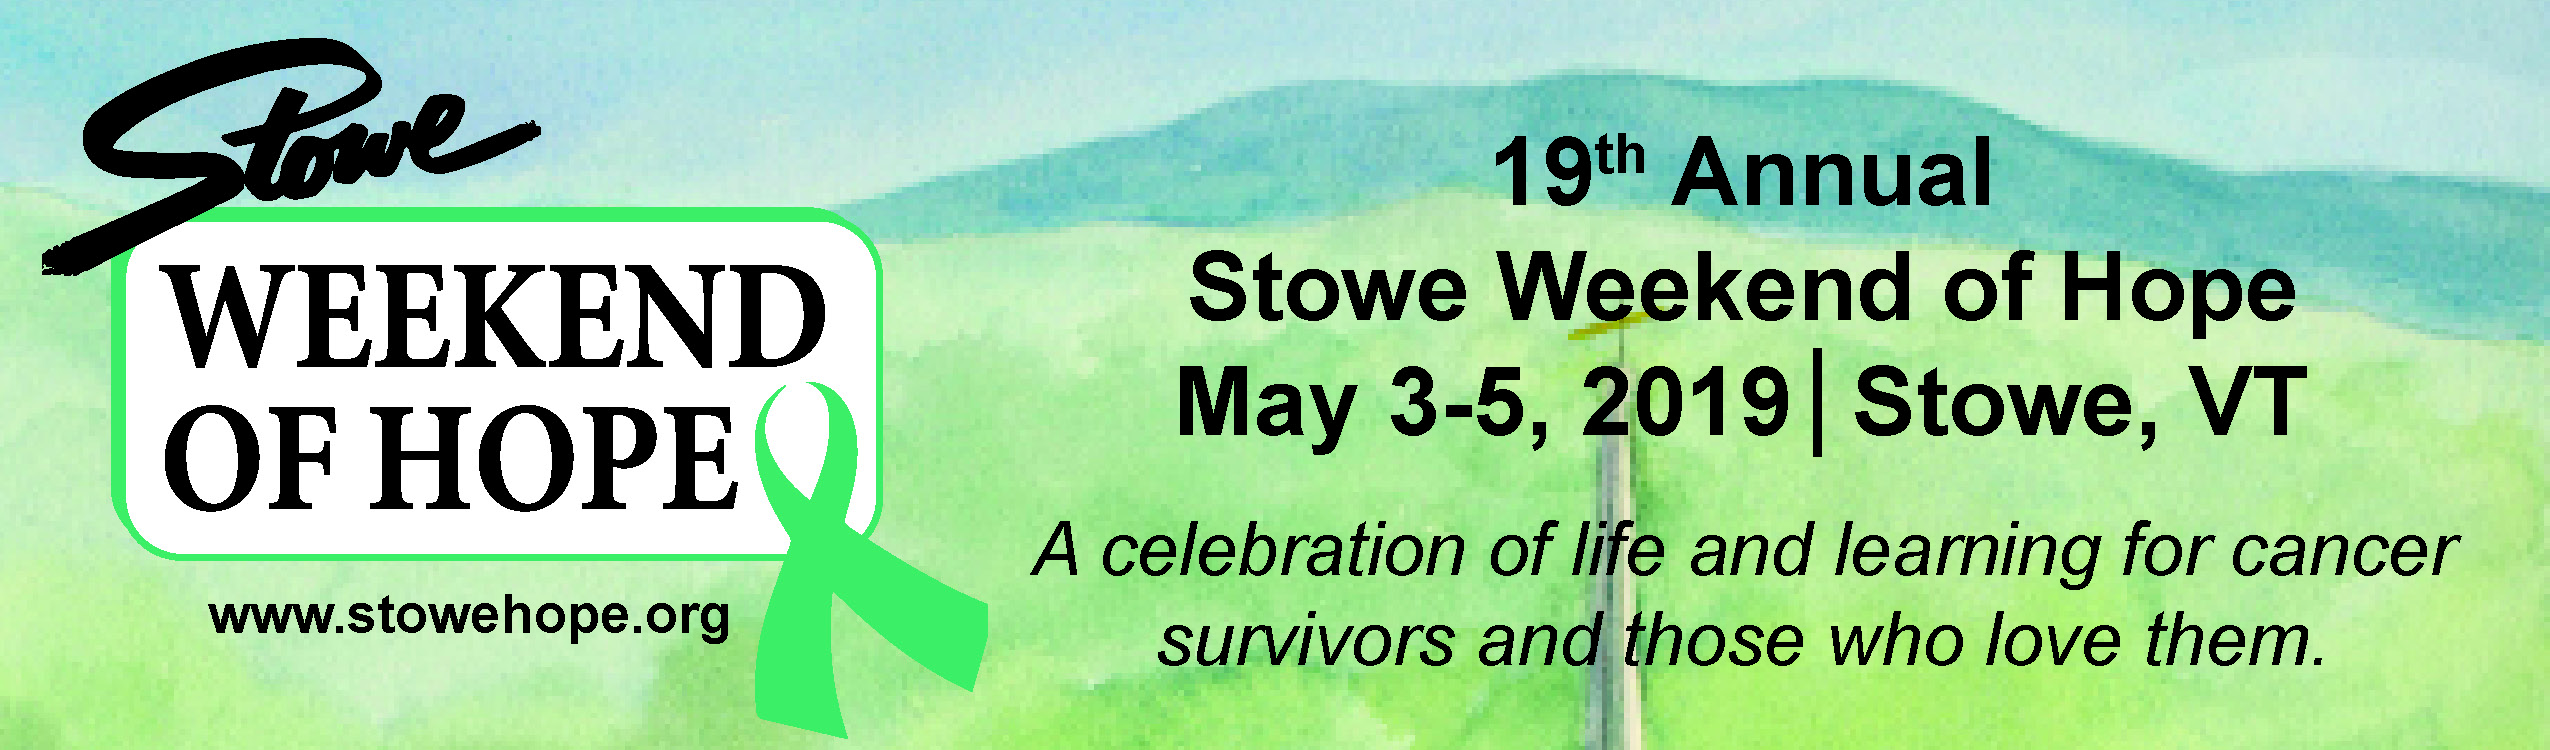 Stowe Weekend of Hope 2019 ~ Sponsors & Health Fair Exhibitors